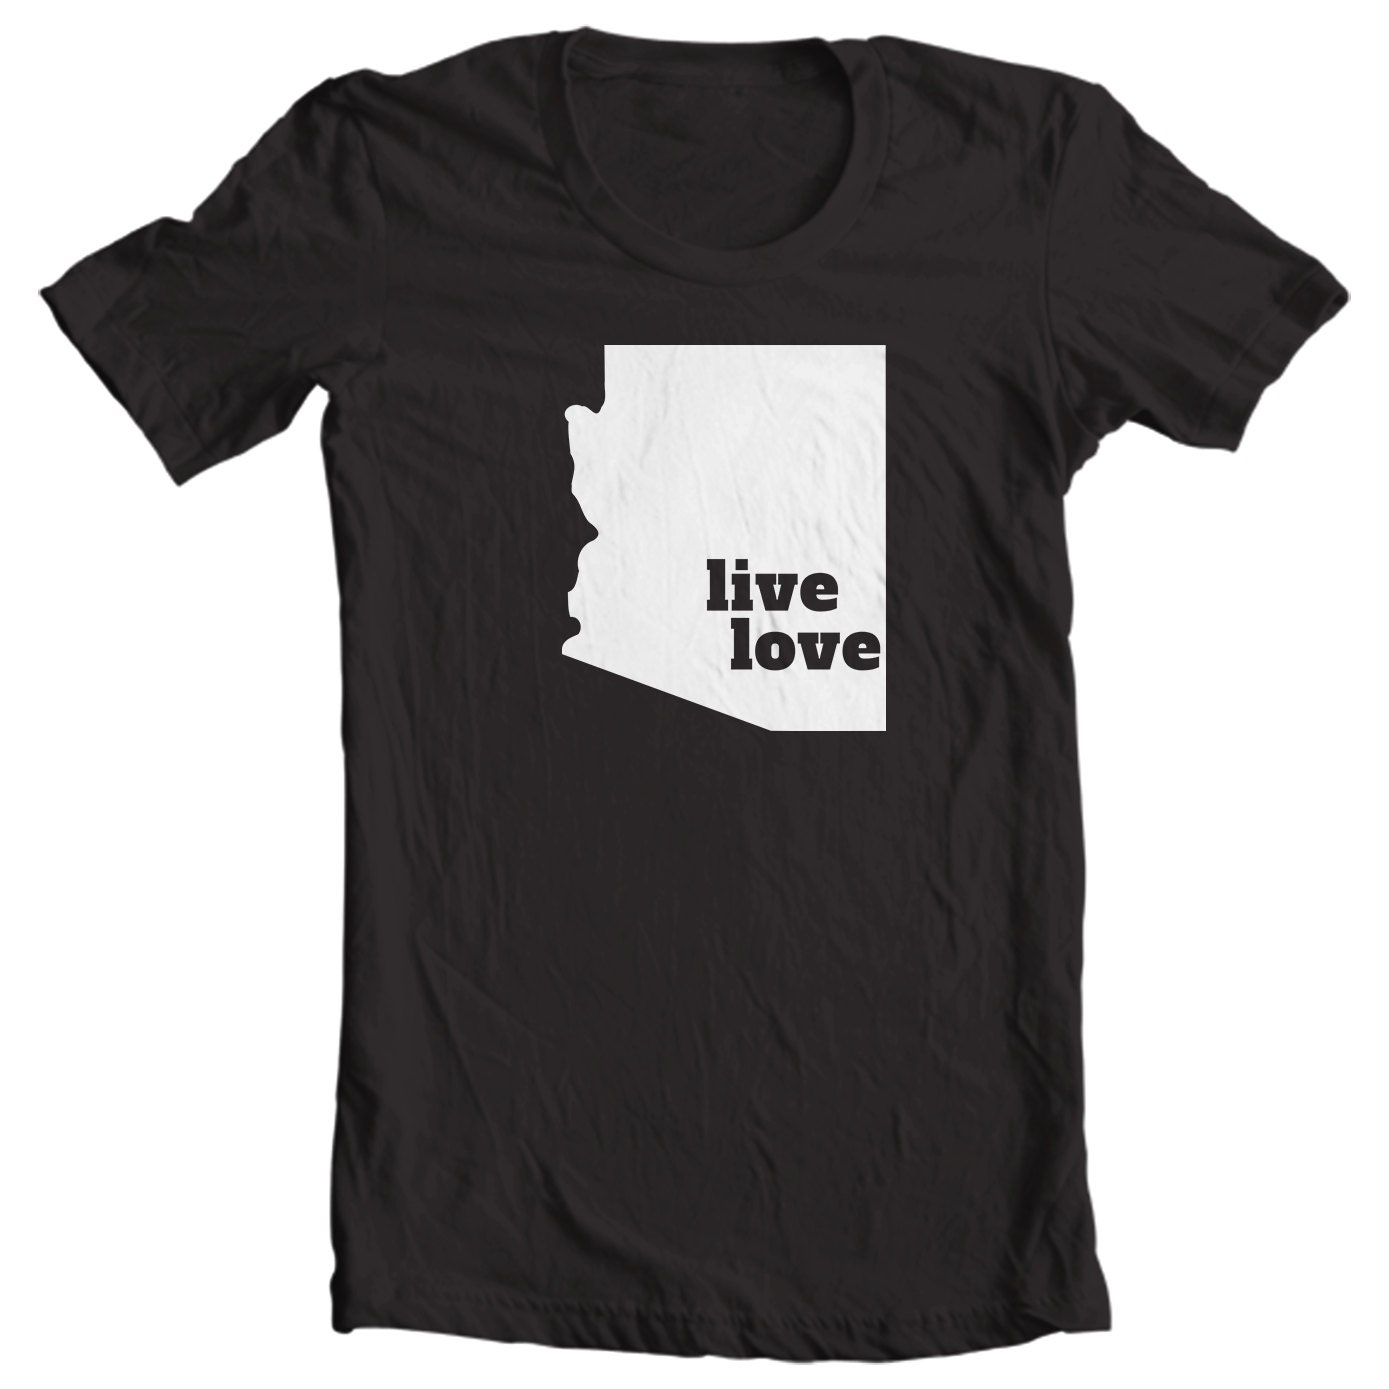 Arizona T-shirt - Live Love Arizona - My State Arizona T-shirt